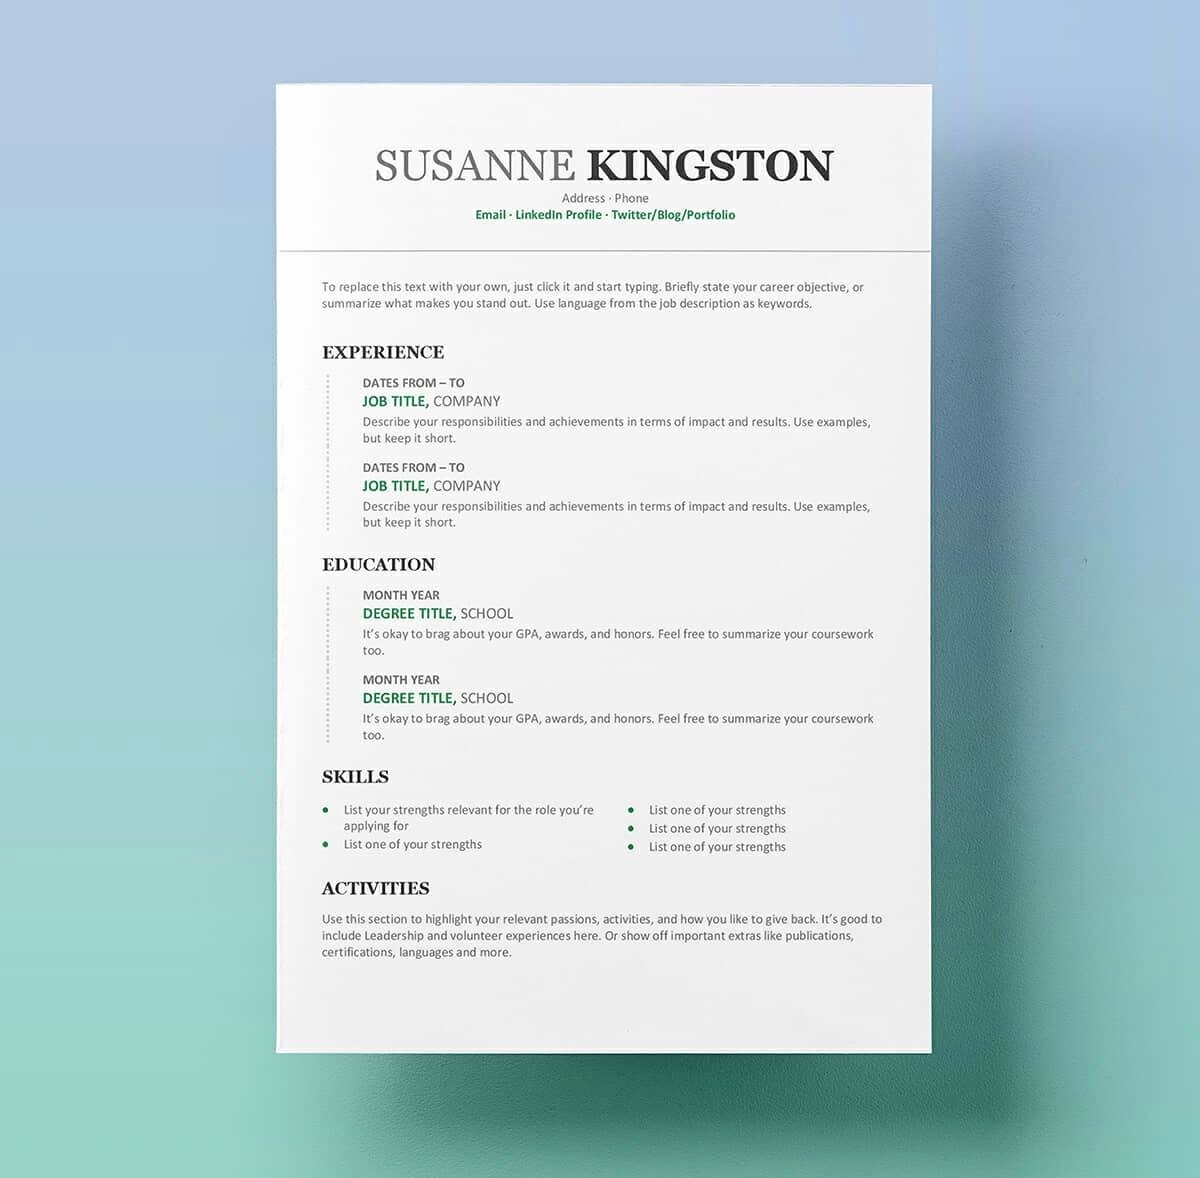 Resume Template for Microsoft Word Awesome Resume Templates for Word Free 15 Examples for Download